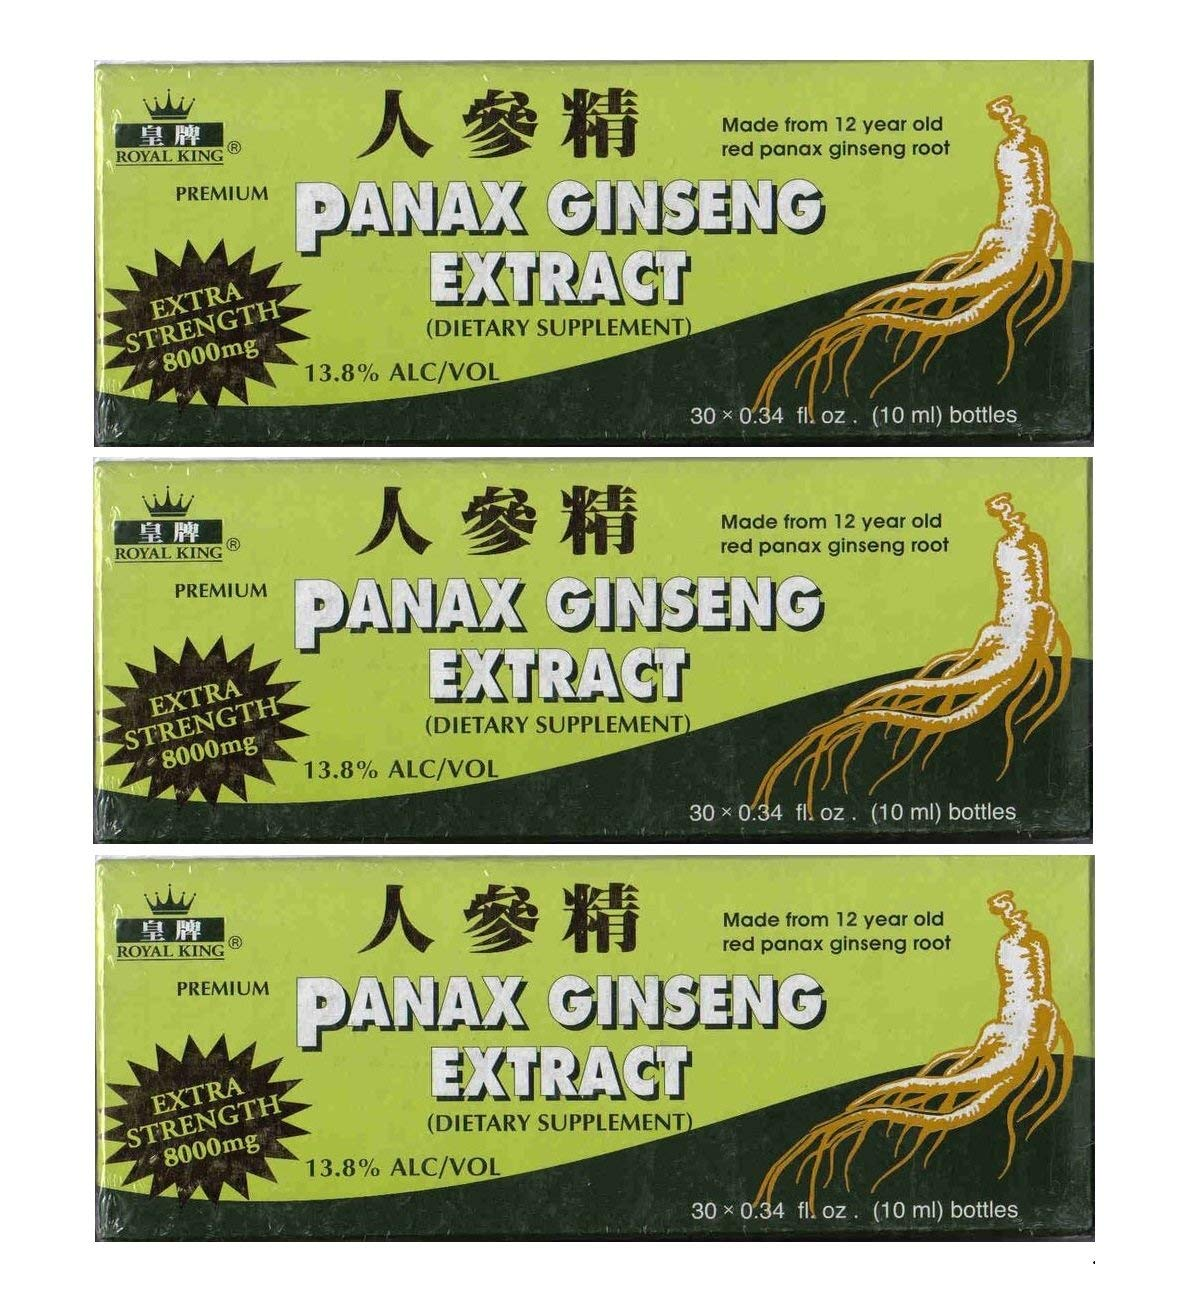 Royal King Panax Ginseng Extract With Alcohol 8000 mg 30 Vial 3 Boxes